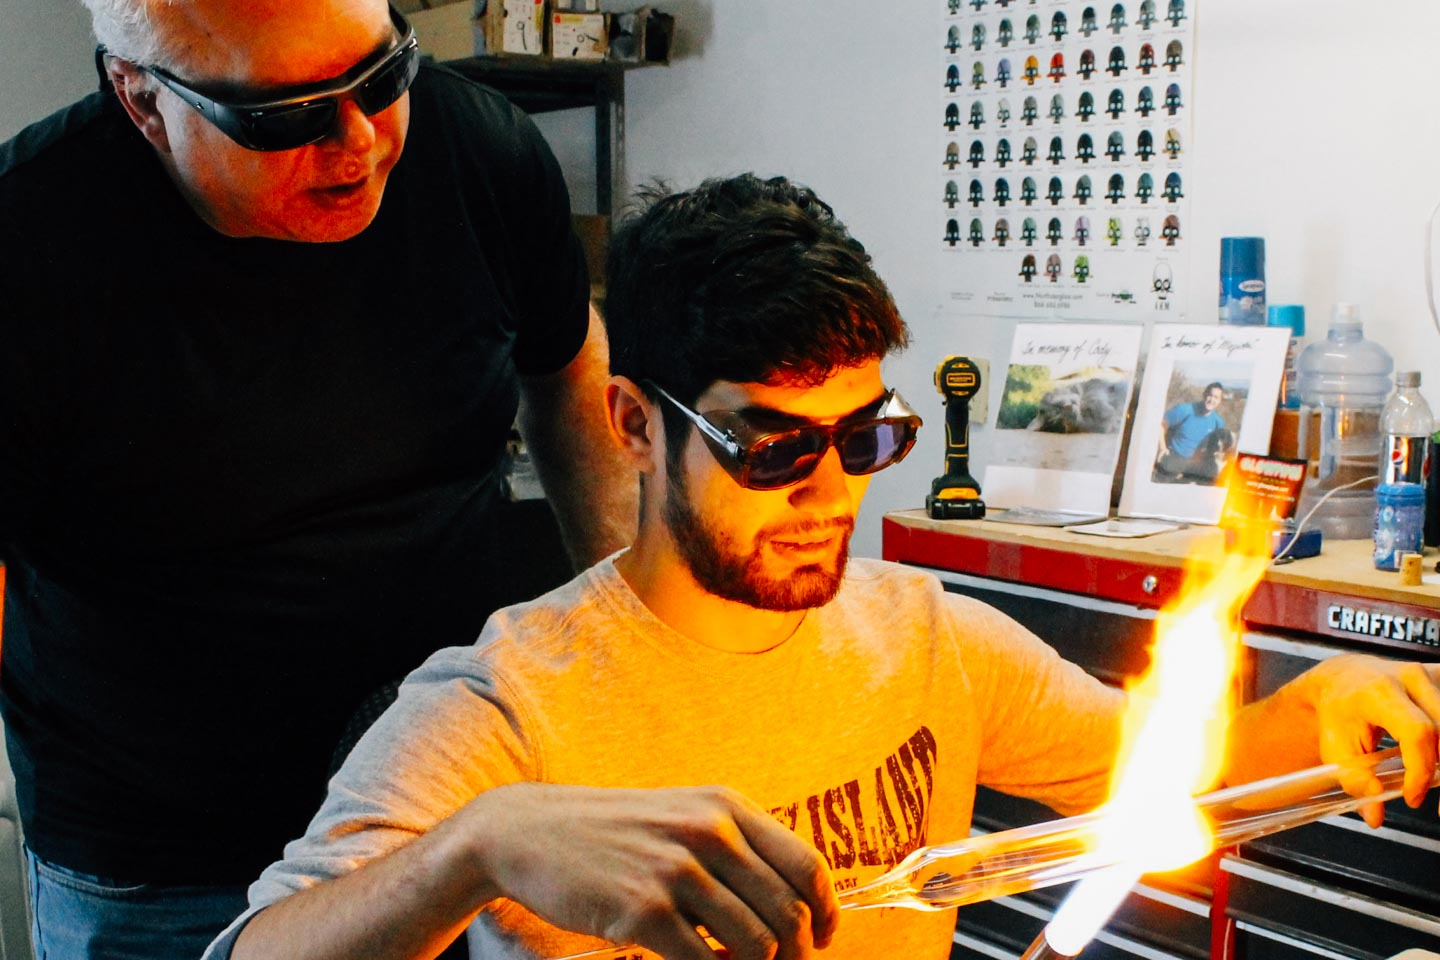 Playing with Fire - Glassblowing! - Airbnb